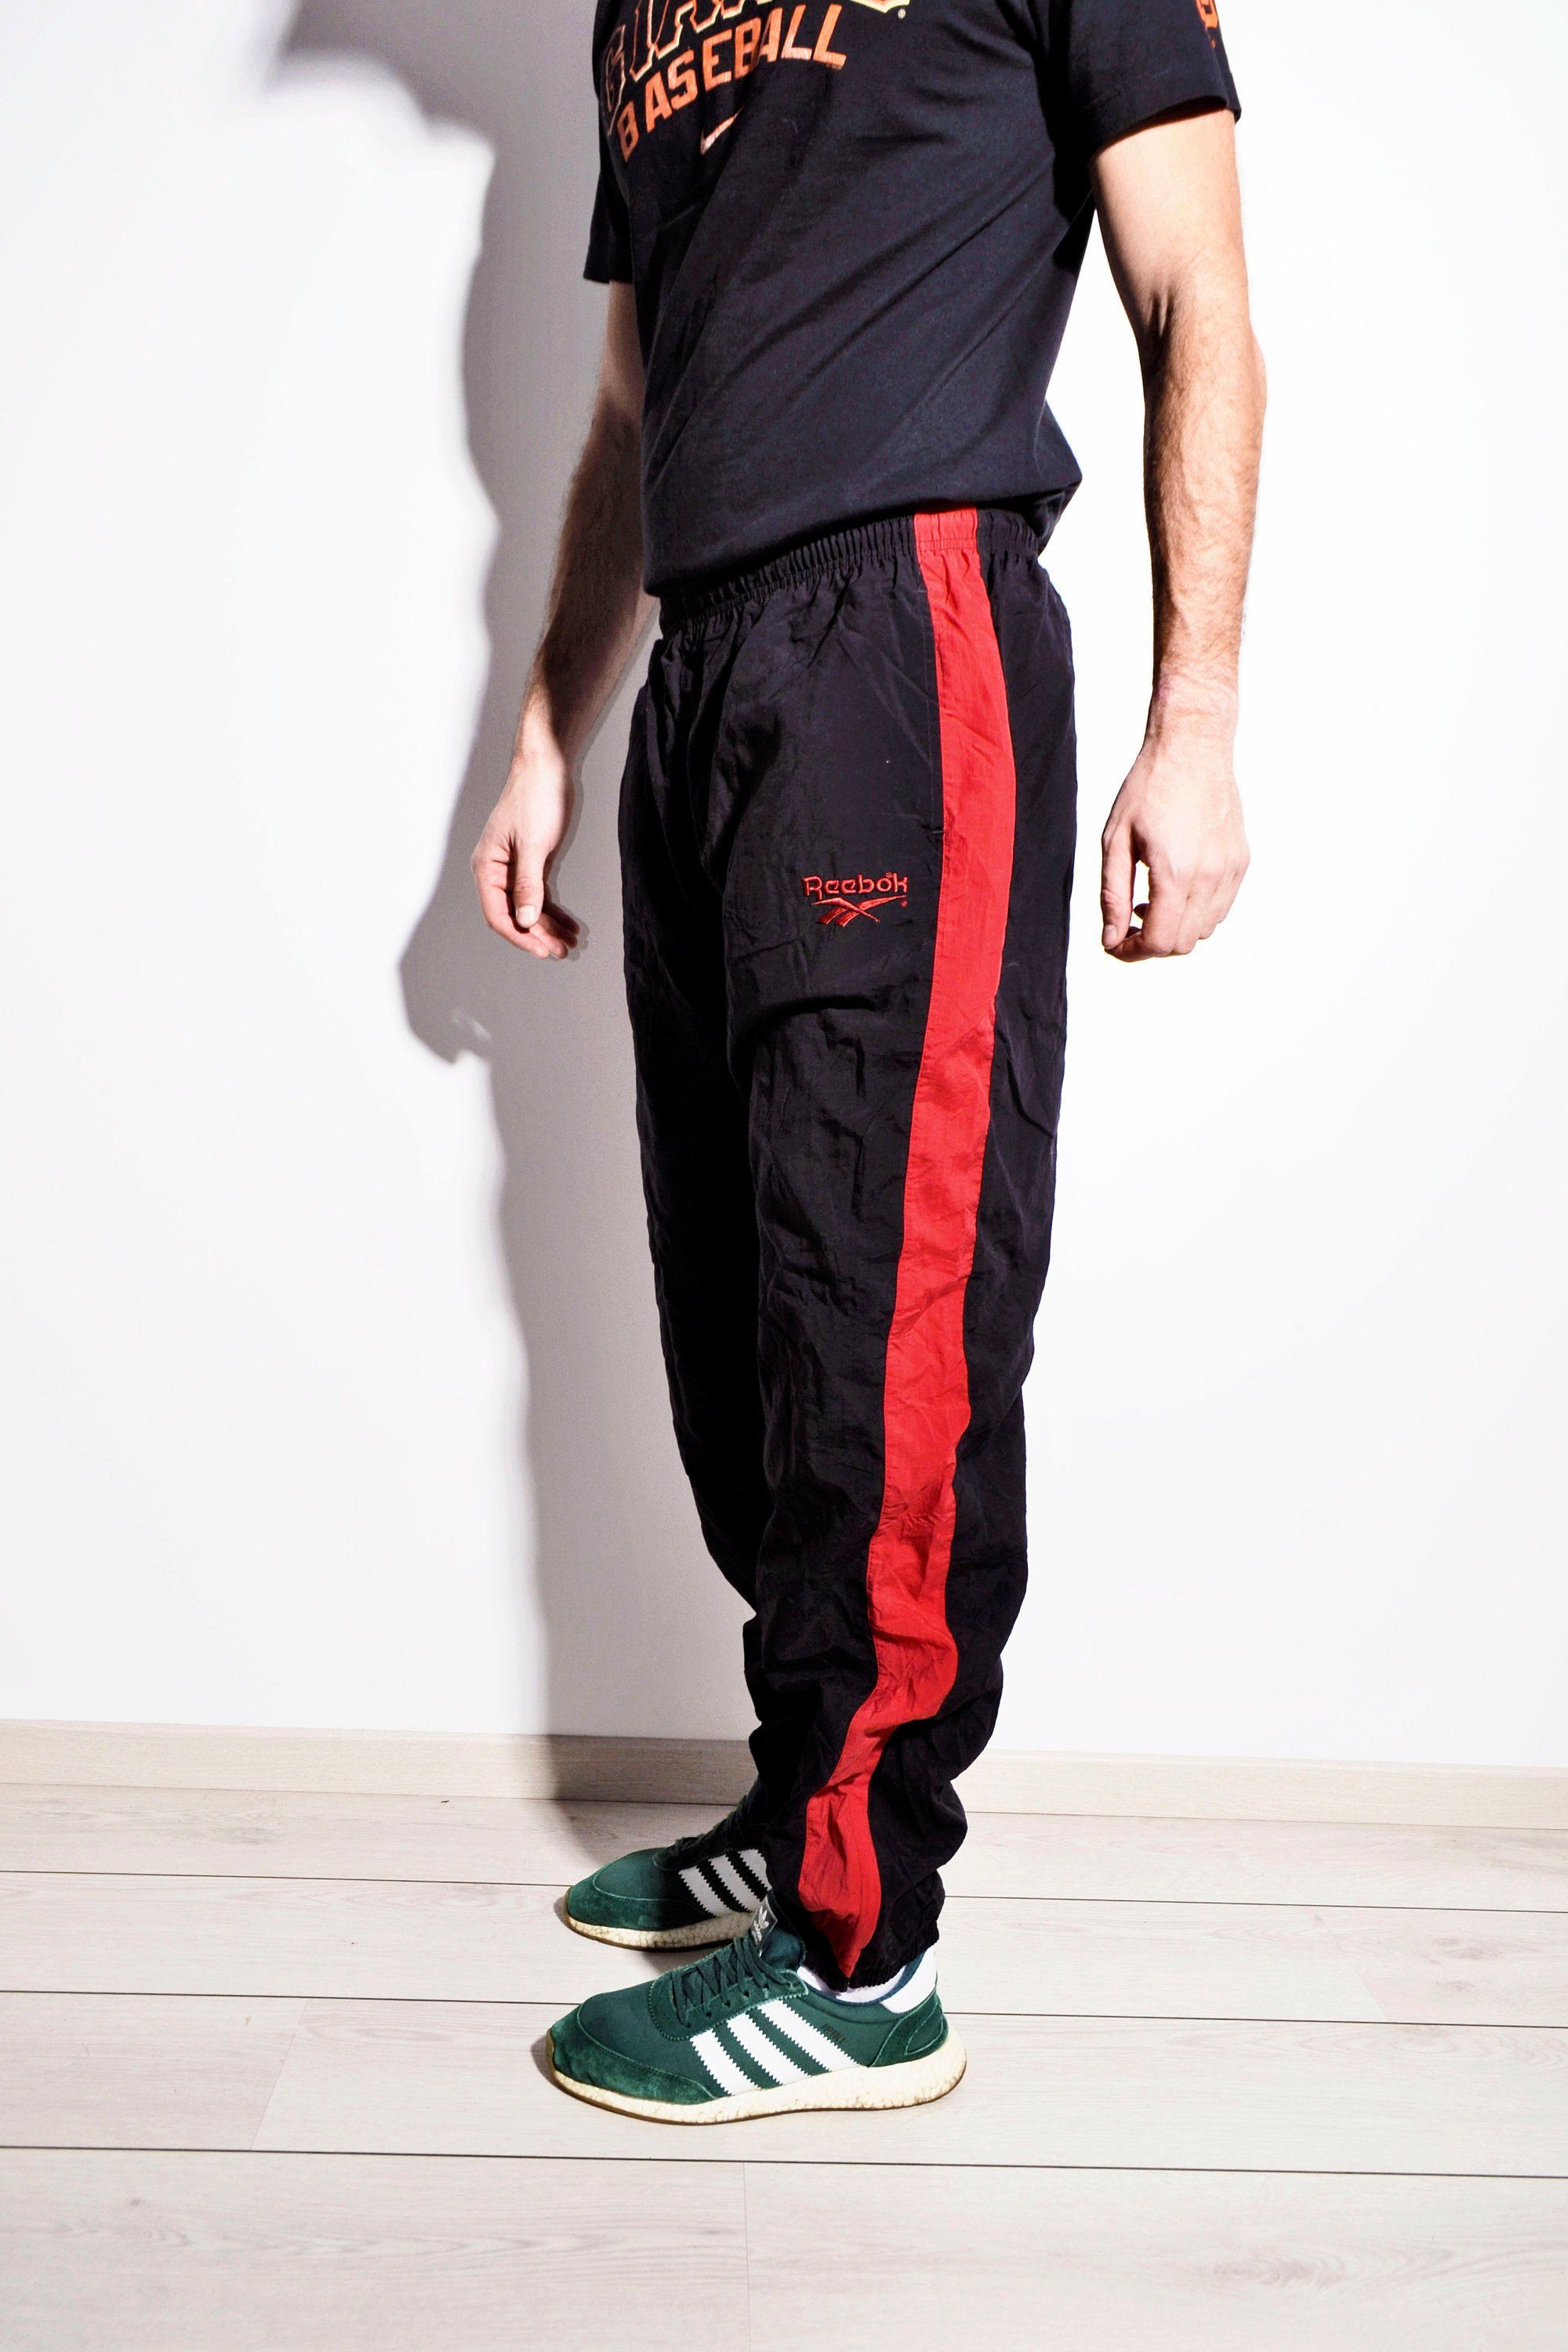 Reebok Track Pants Various sizes Black